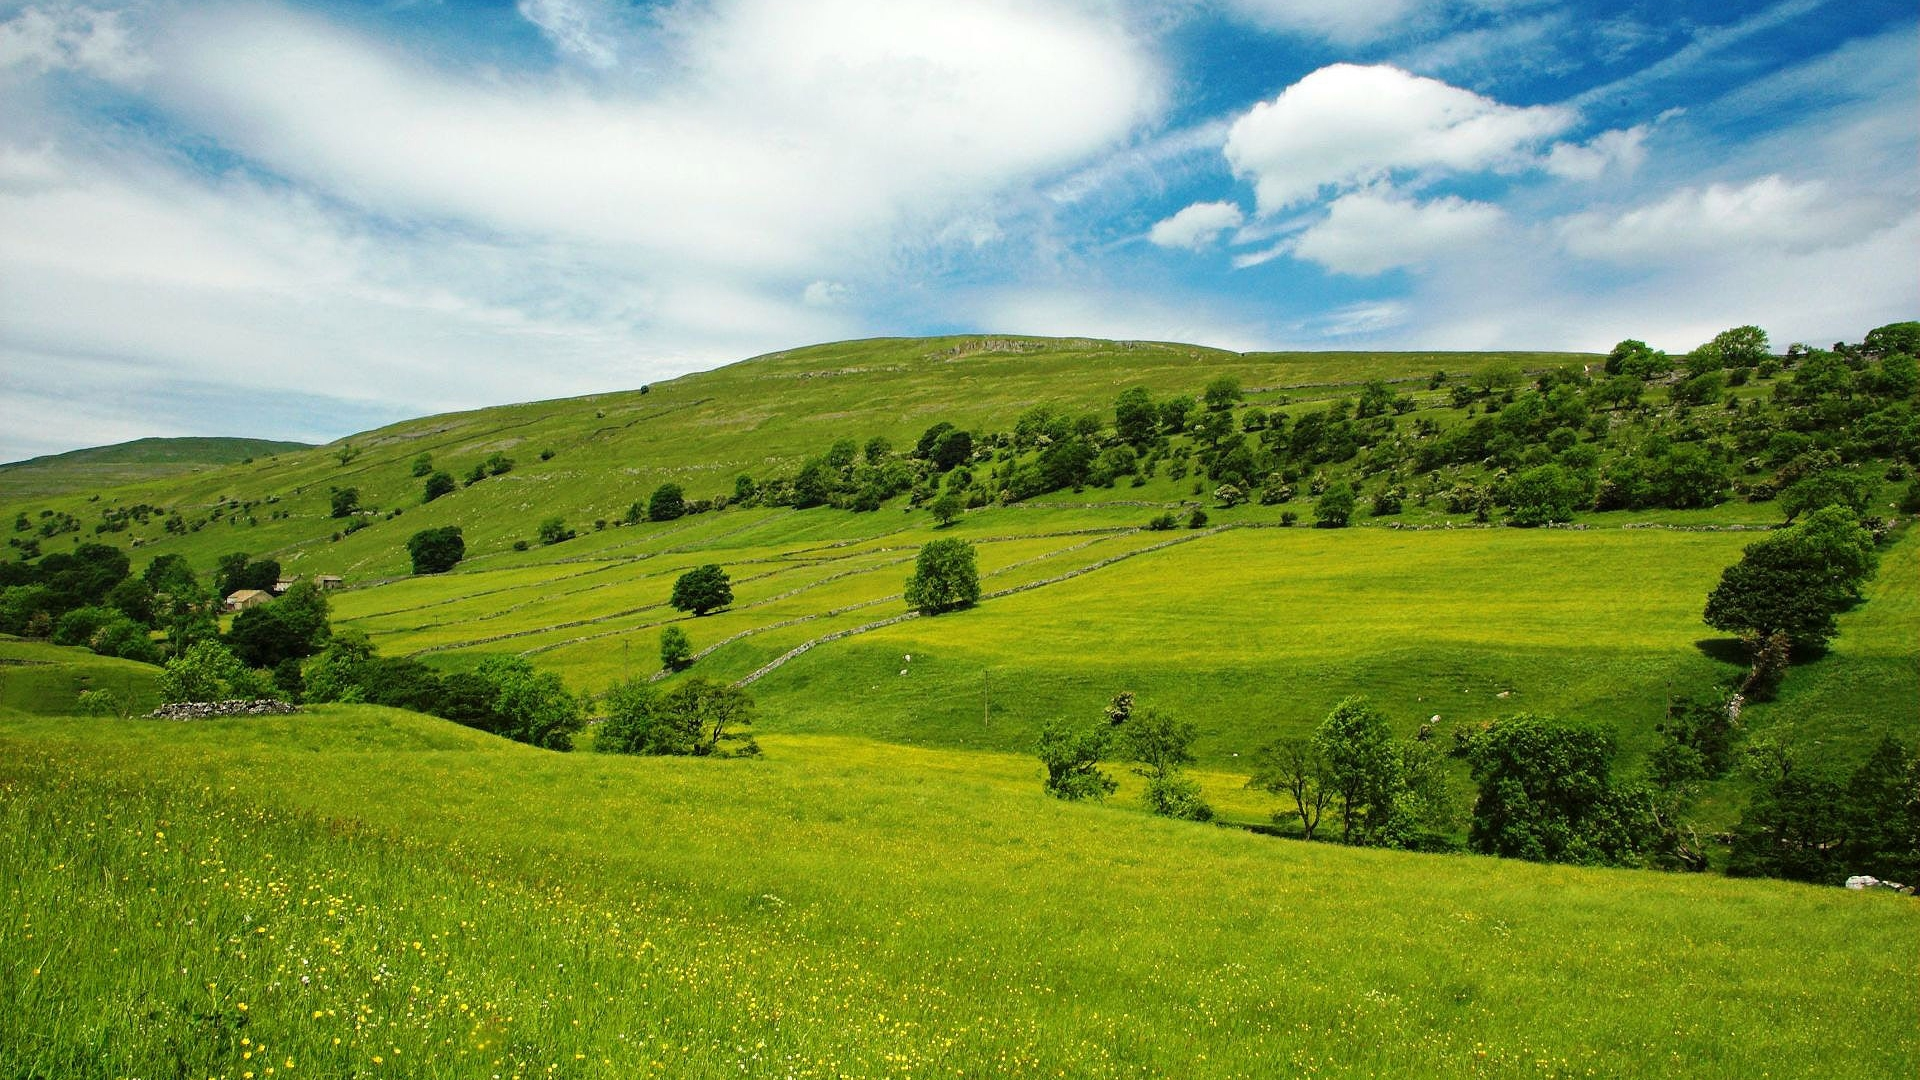 Amazing Wallpaper Home Screen Scenery - waste-green-landscape  Pictures_89766.jpg